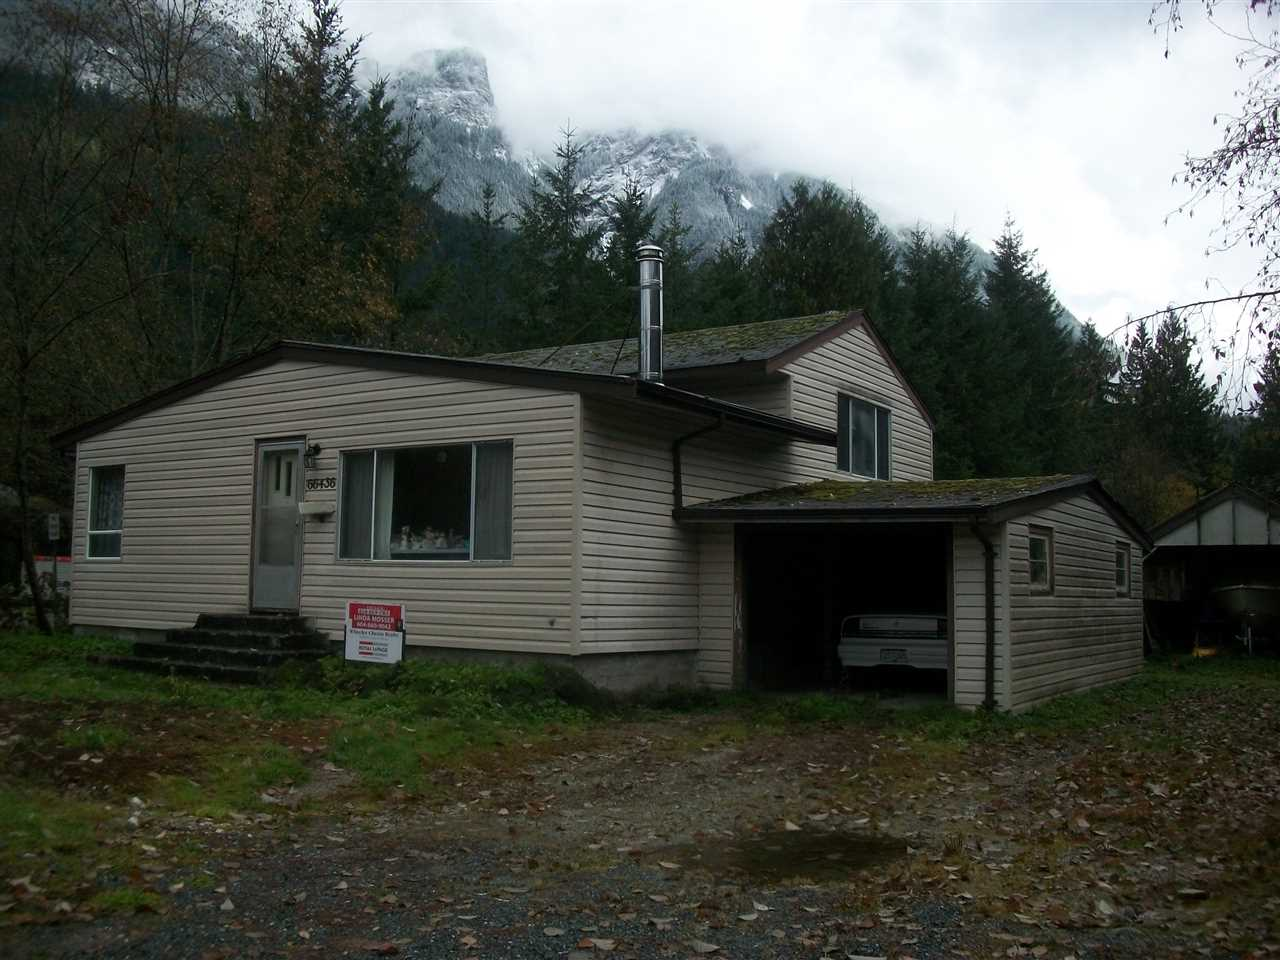 Dreams can come true! Amazing opportunity to own your own lakeside home. Located across the street and just steps from boat launch access to beautiful Kawkawa Lake. Perfect summer time or weekend getaway or full time residence. Only minutes to recreation, Othello Tunnels, fishing, kayaking, boating, water sports, golf, hiking and downtown Hope. Spacious split level, 3 bedroom family home on .47 of an acre awaits your touch. Beautiful private lot with plenty of room for all your recreational toys. Gardeners paradise. Natural surroundings, mountain views and the sound of running creeks to enjoy. This property offers you so much. Great location and a great value!